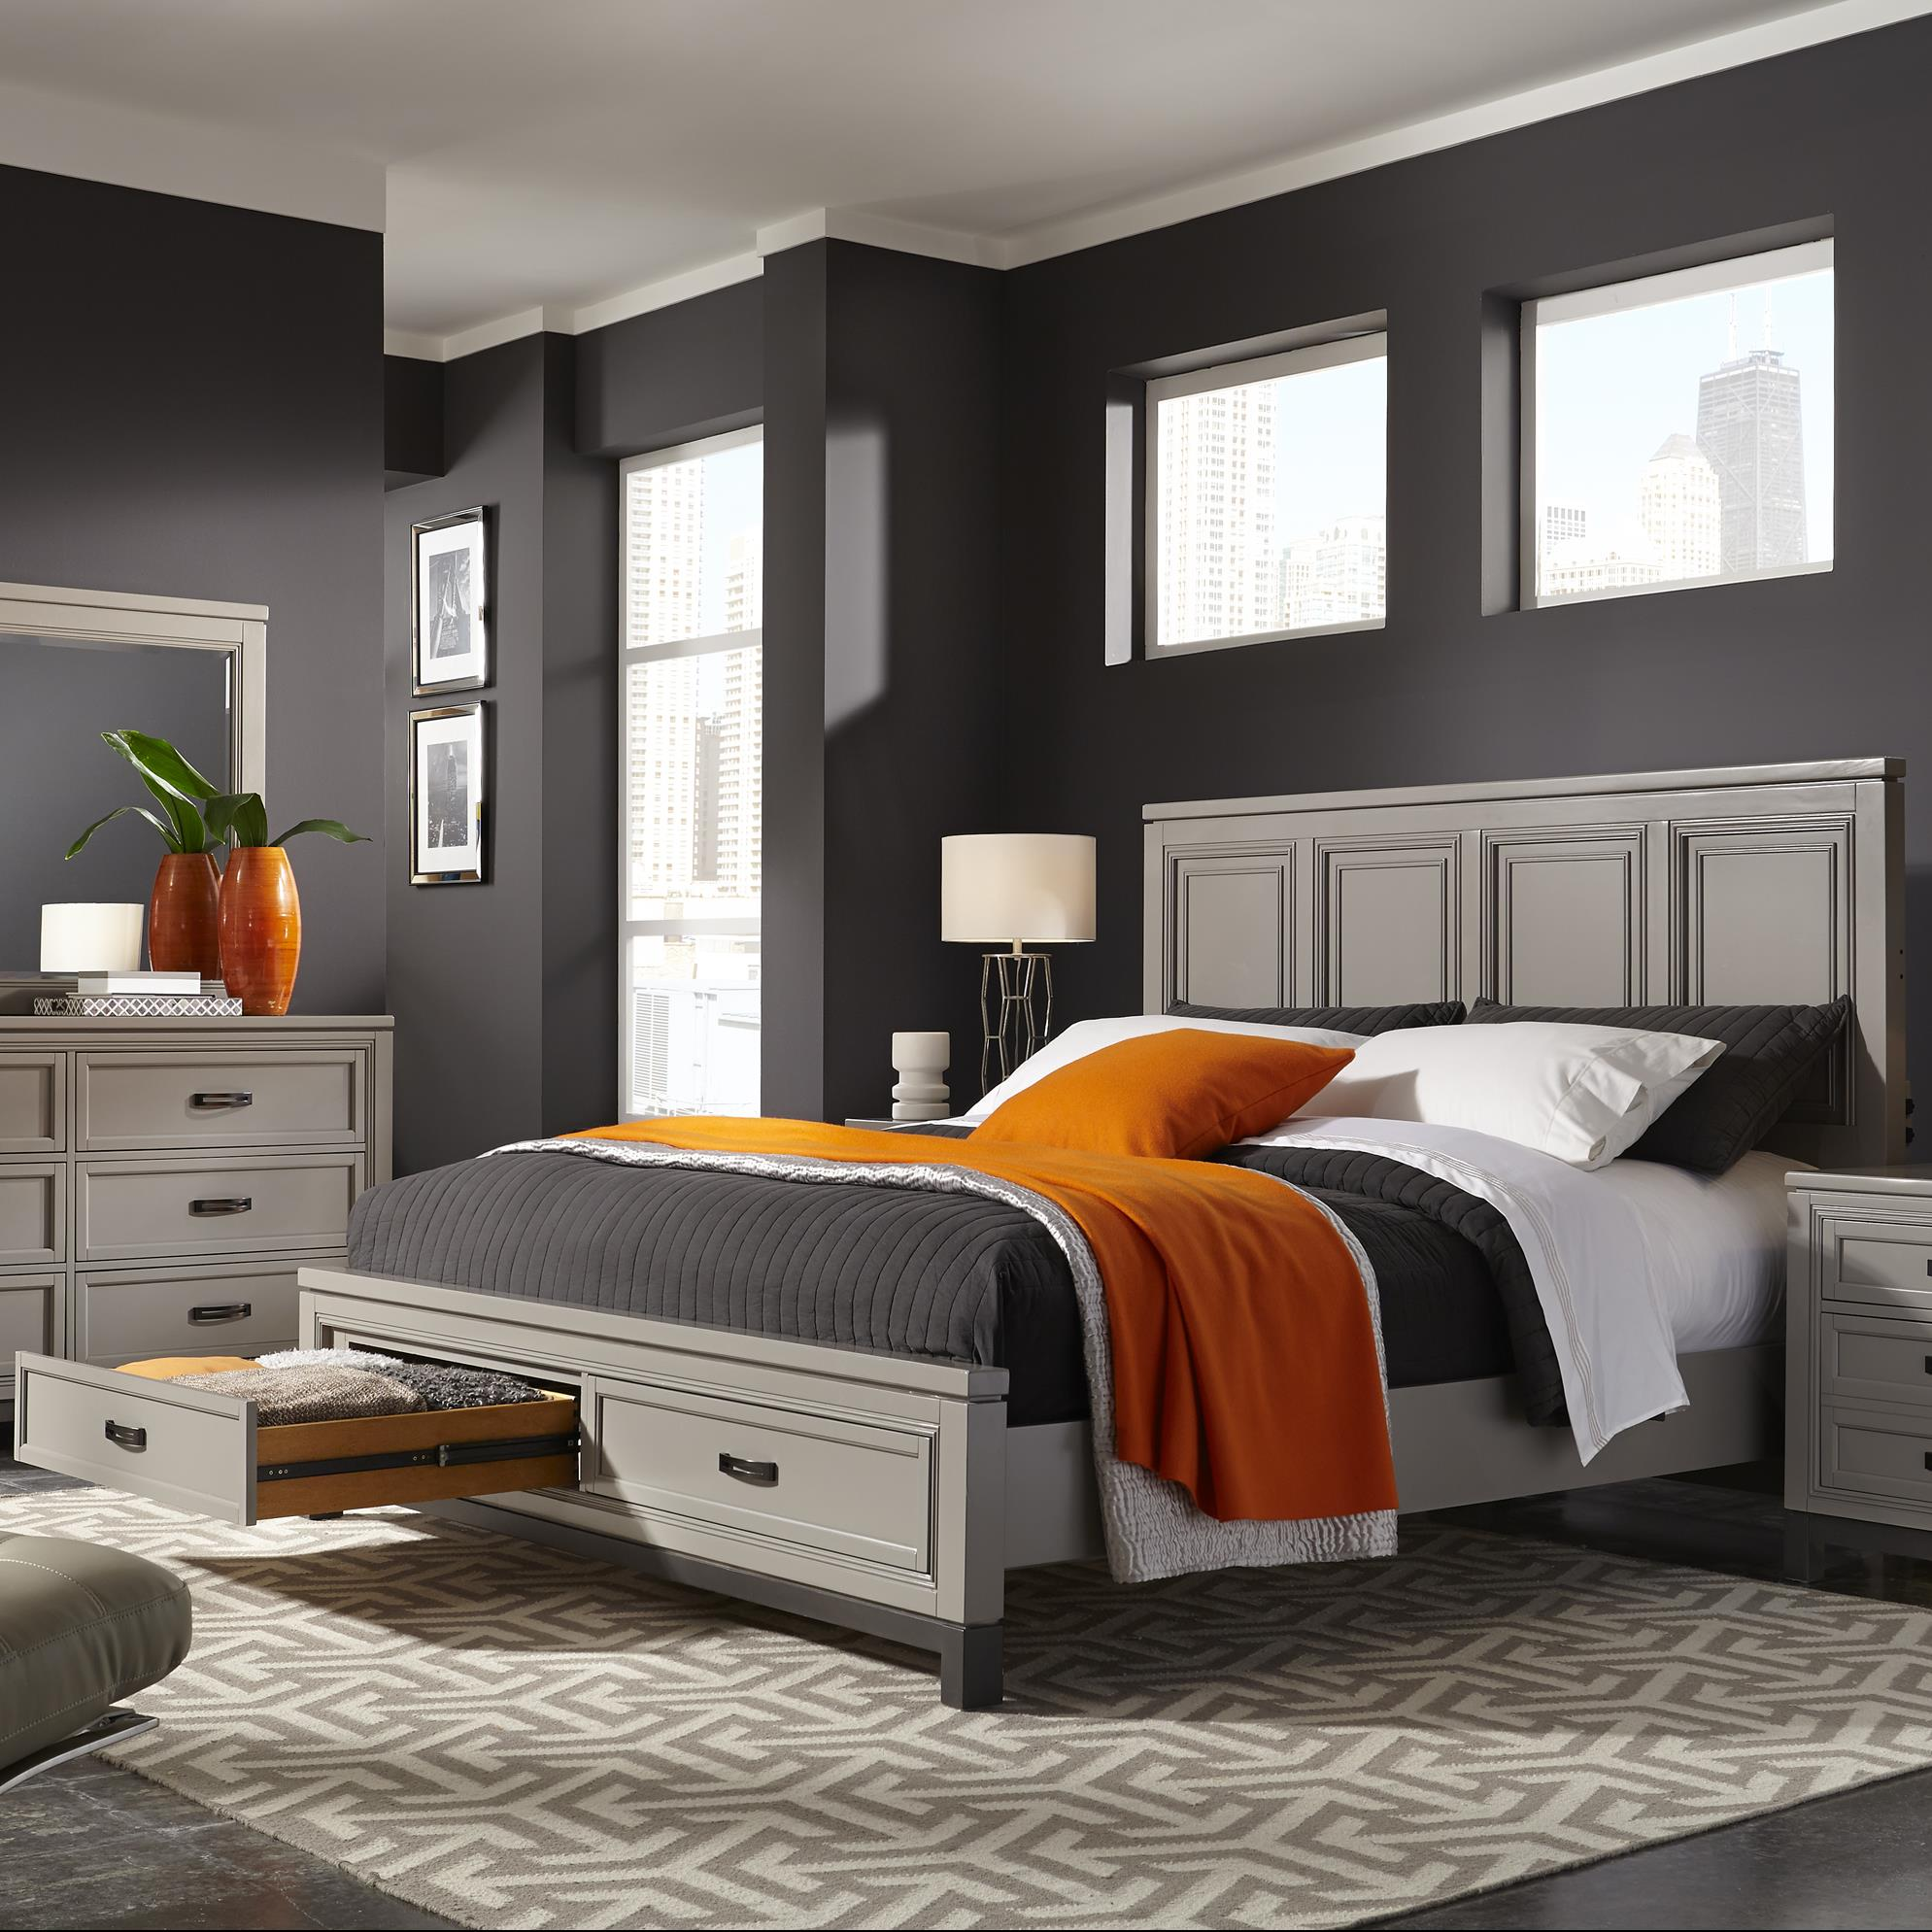 Hyde Park Queen Painted Panel Storage Bed by Aspenhome at Darvin Furniture